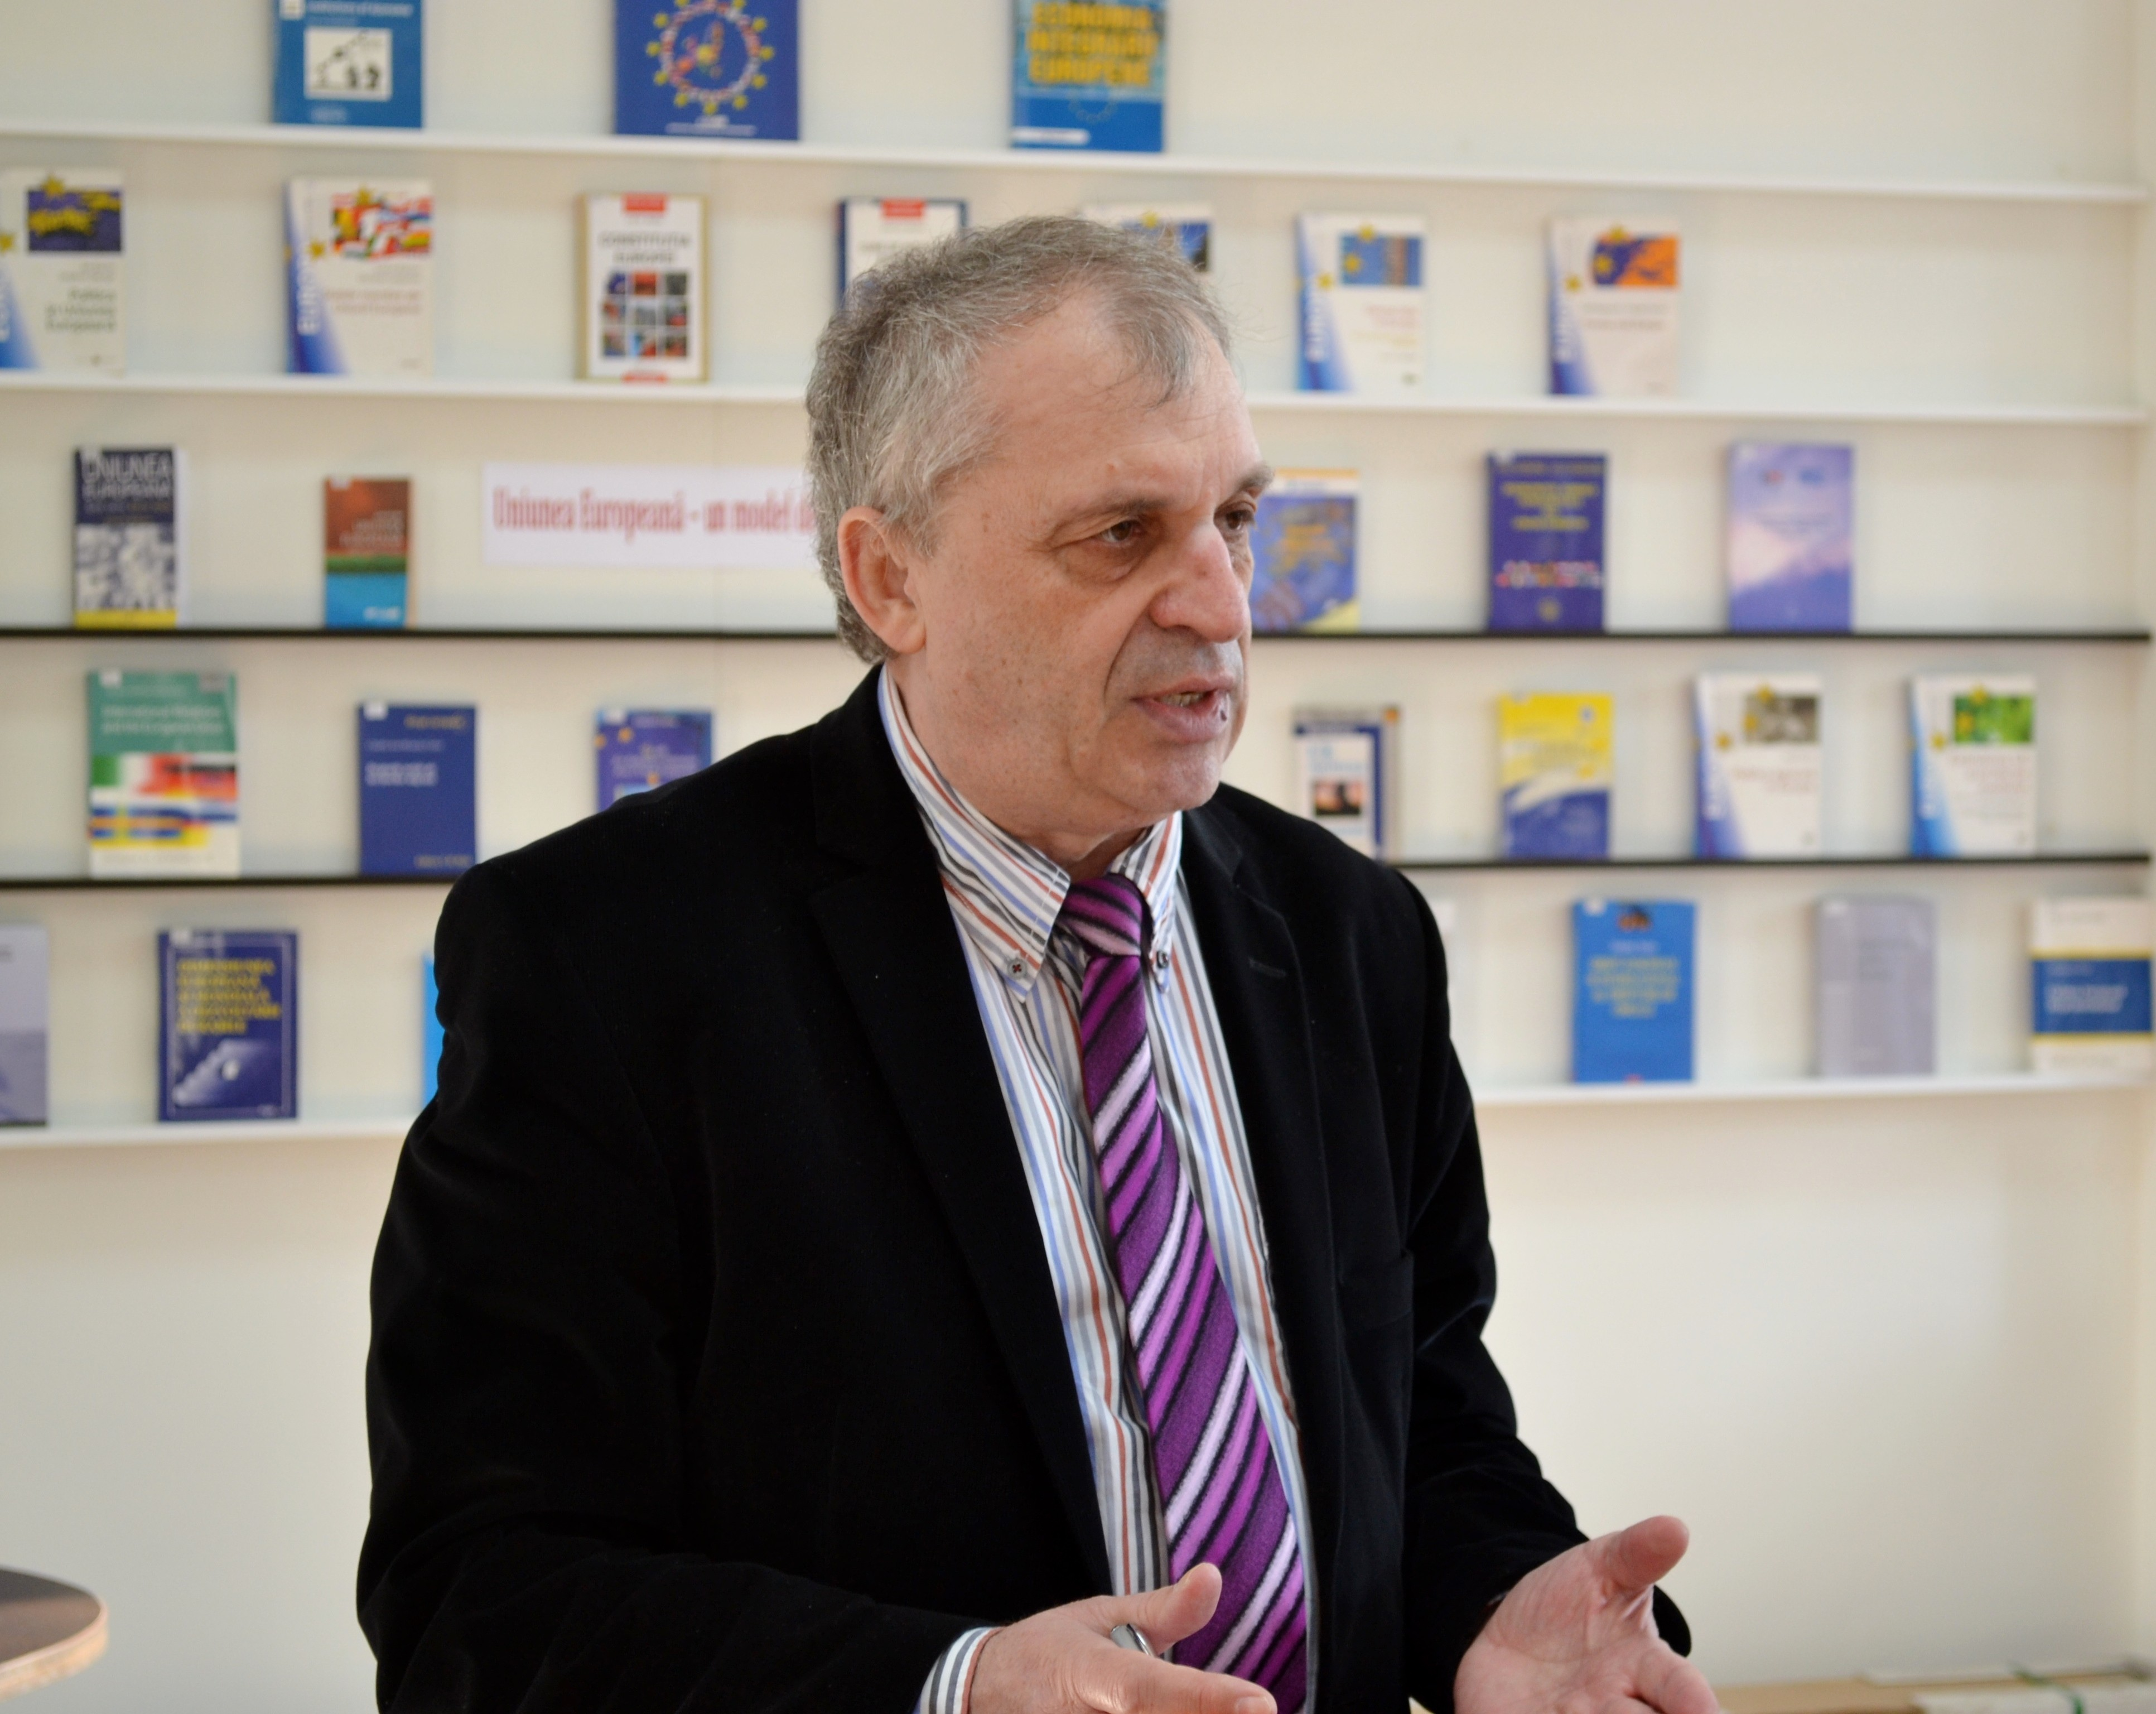 INTERVIEW - Moldova pro-Russian presidential candidate can benefit from dispersed pro-EU vote